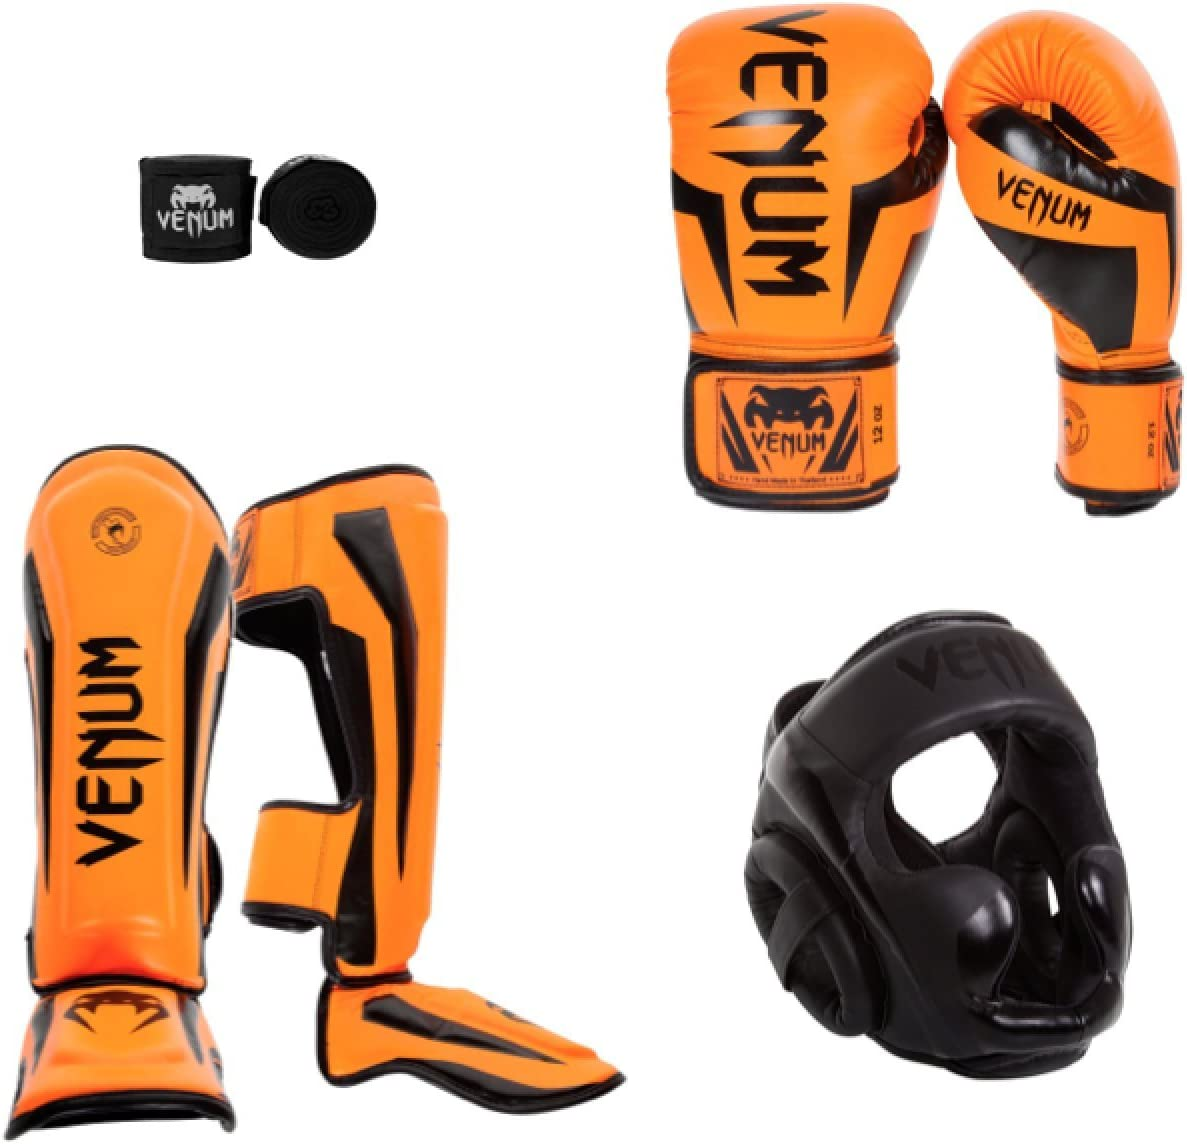 venum sparing and grapling protective gear Brand new challenger 2.0 bundle